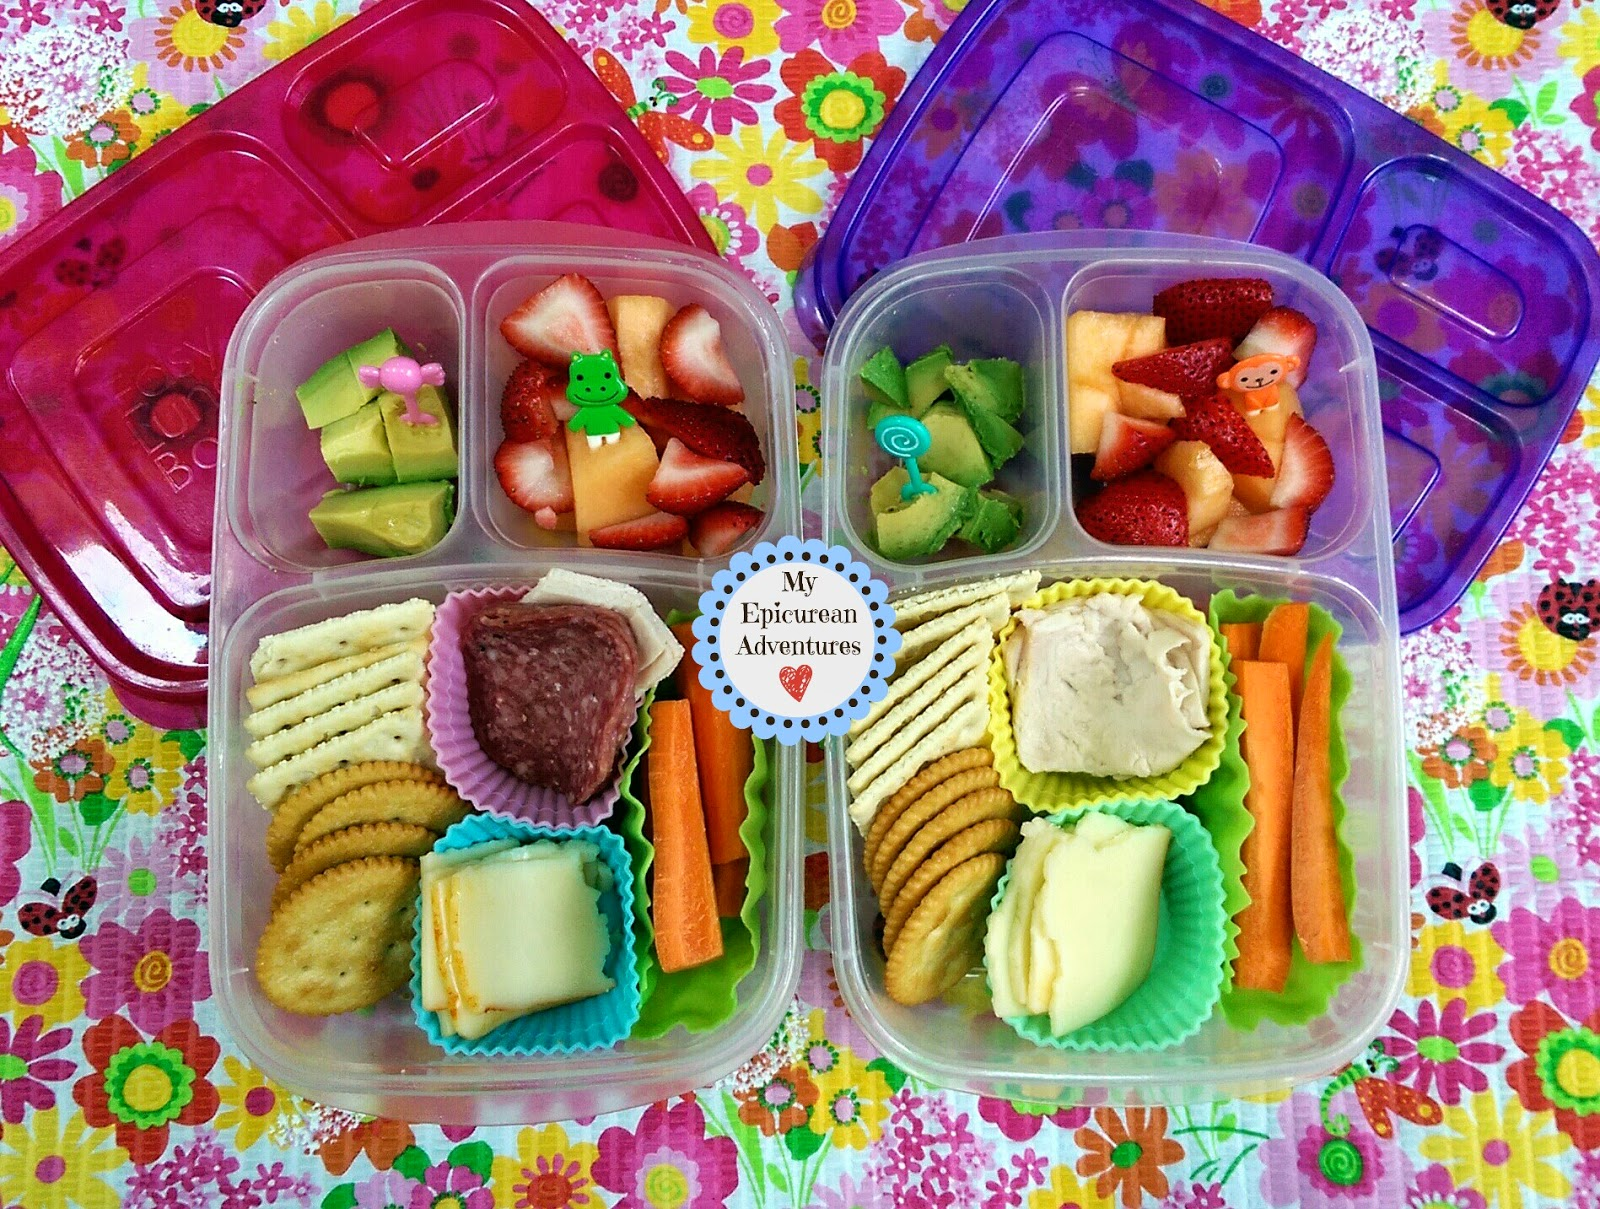 My Epicurean Adventures: Play Date Lunchables @easylunchboxes